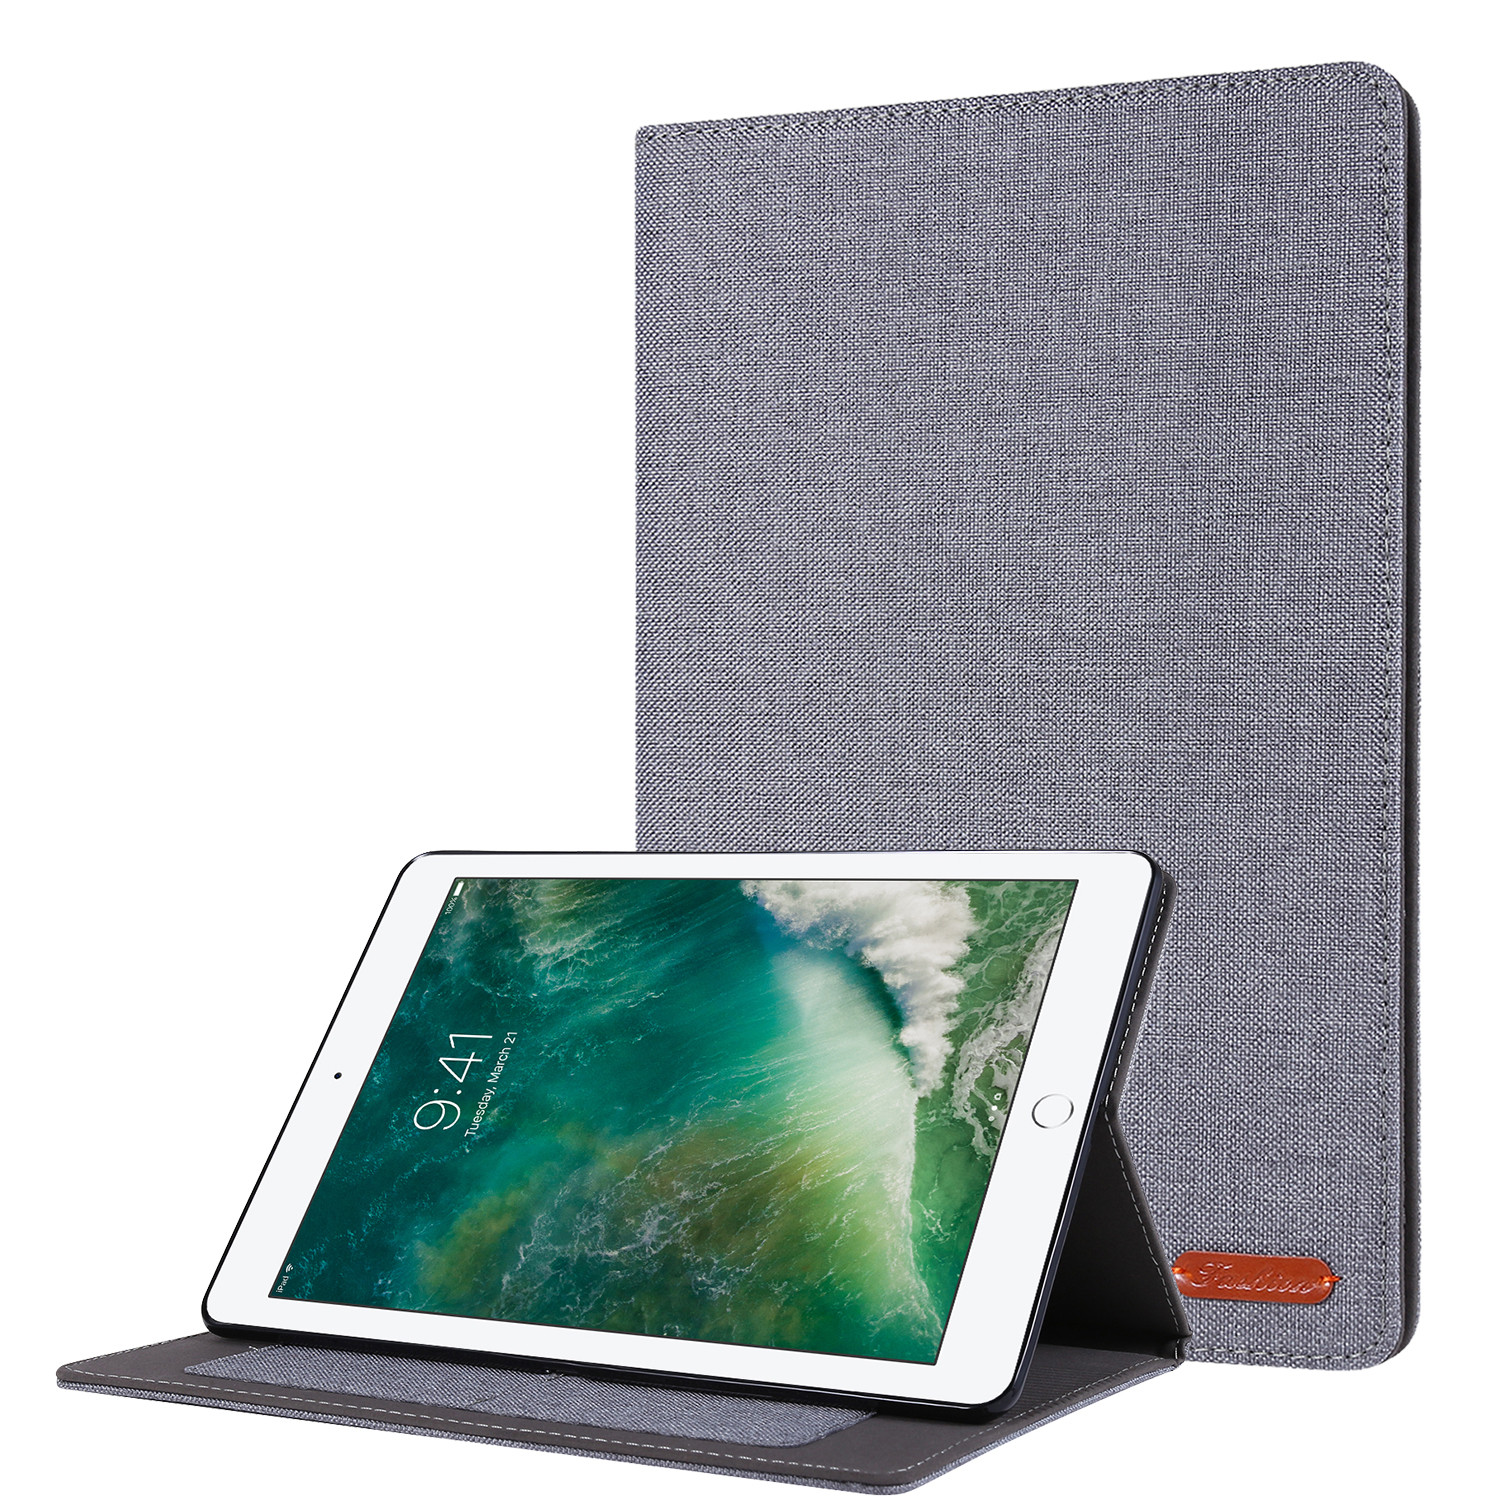 2 White Funda For iPad 7th Generation Case for Apple iPad 10 2 2019 A2197 A2198 A2200 A2232